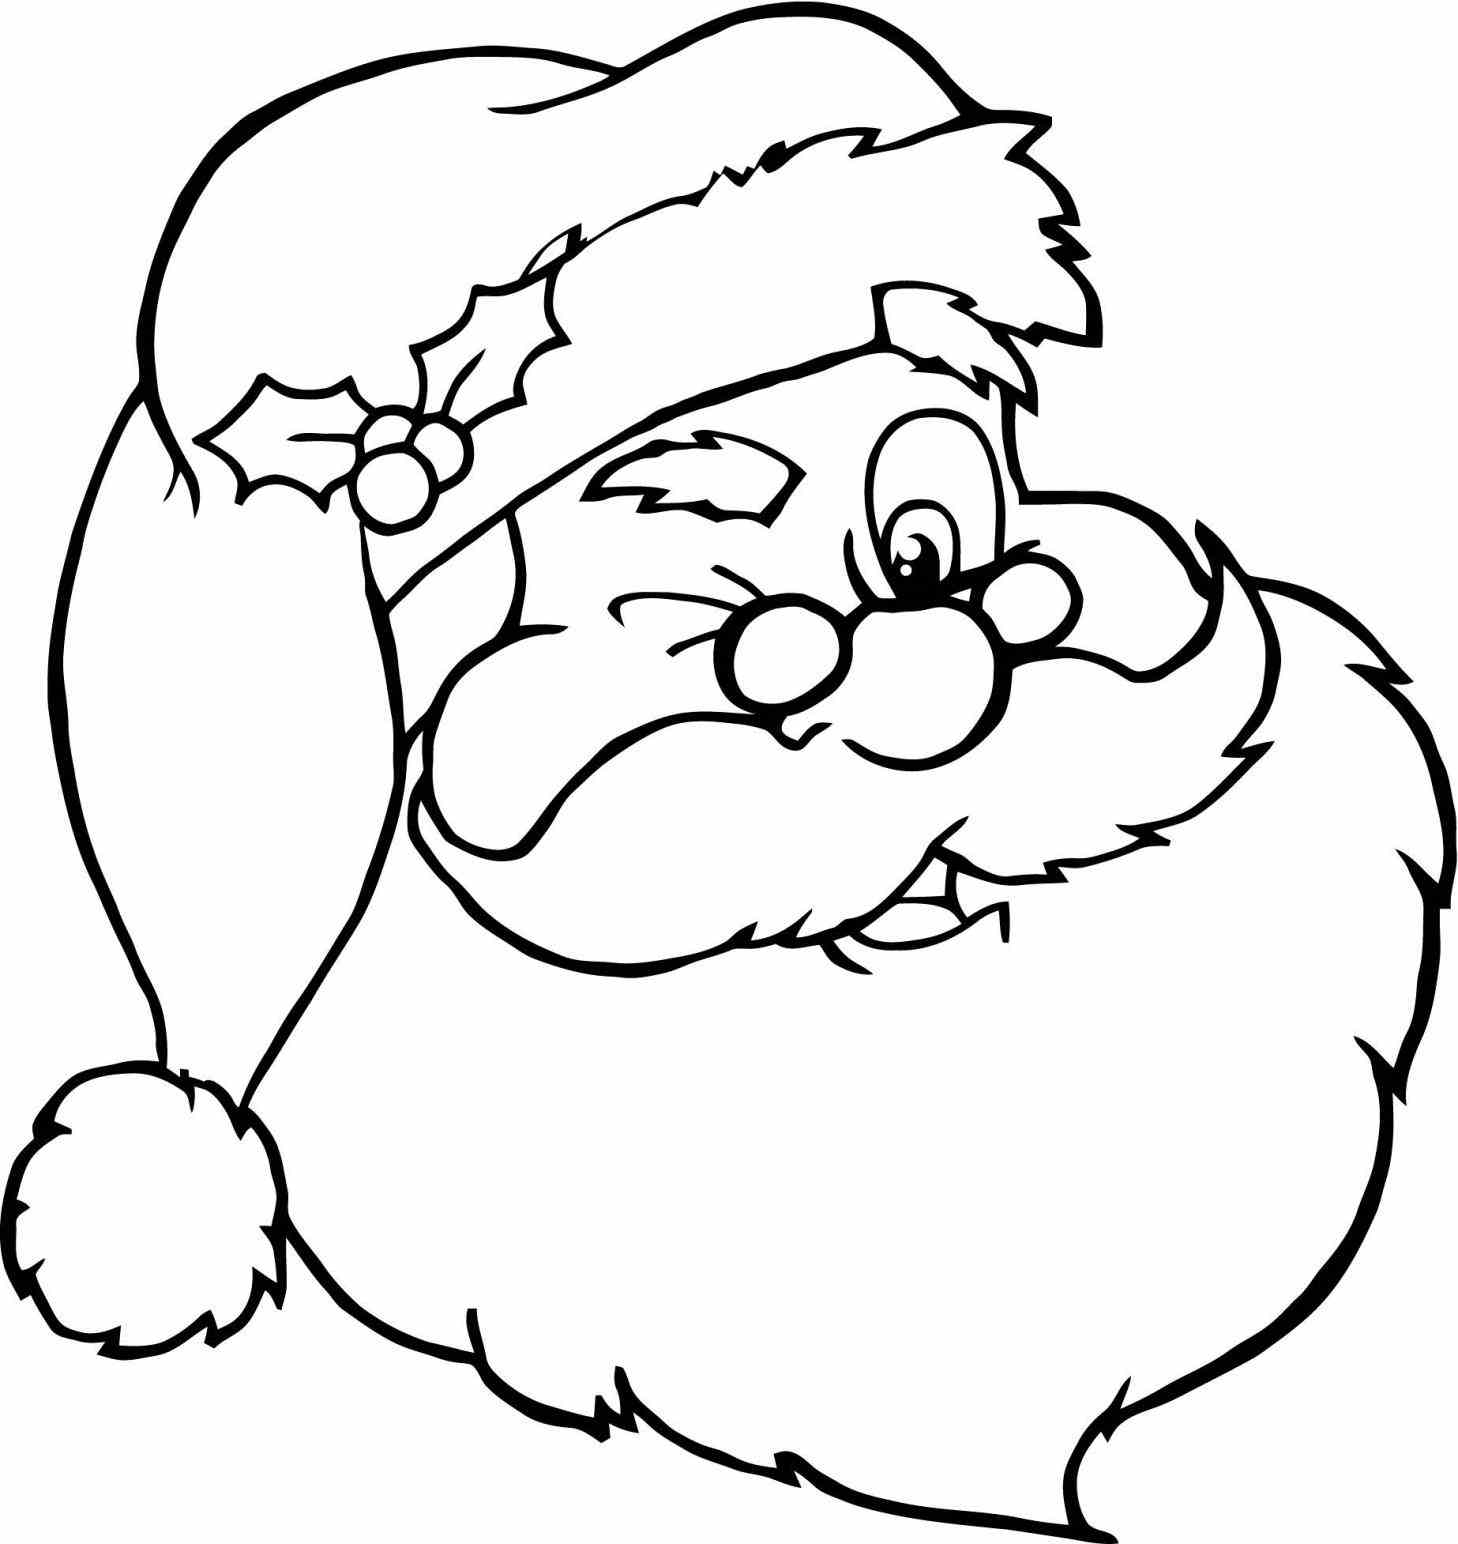 1458x1544 Coloring Pages Kids Face Santa Claus Coloring Page Of Santa